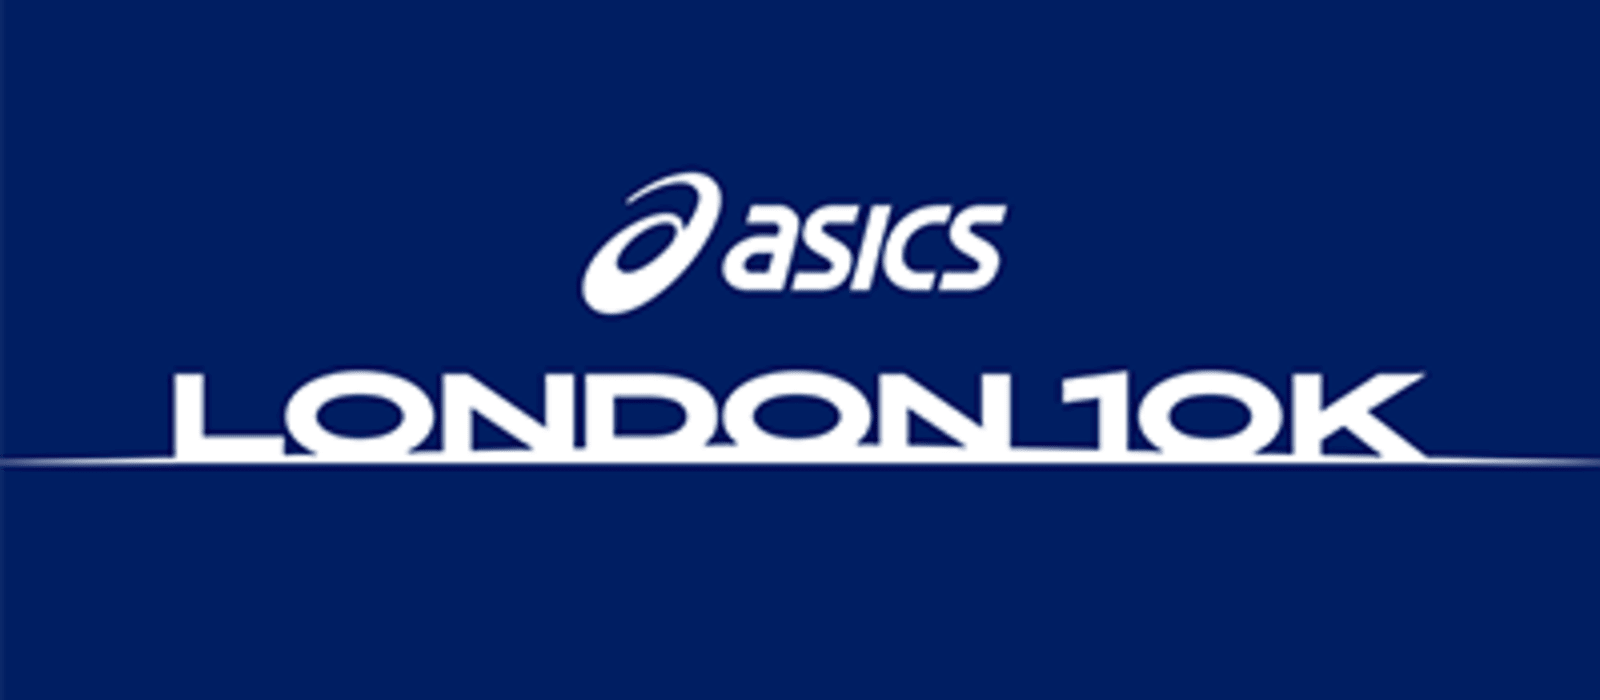 ASICS 10k London Sunday 25th July